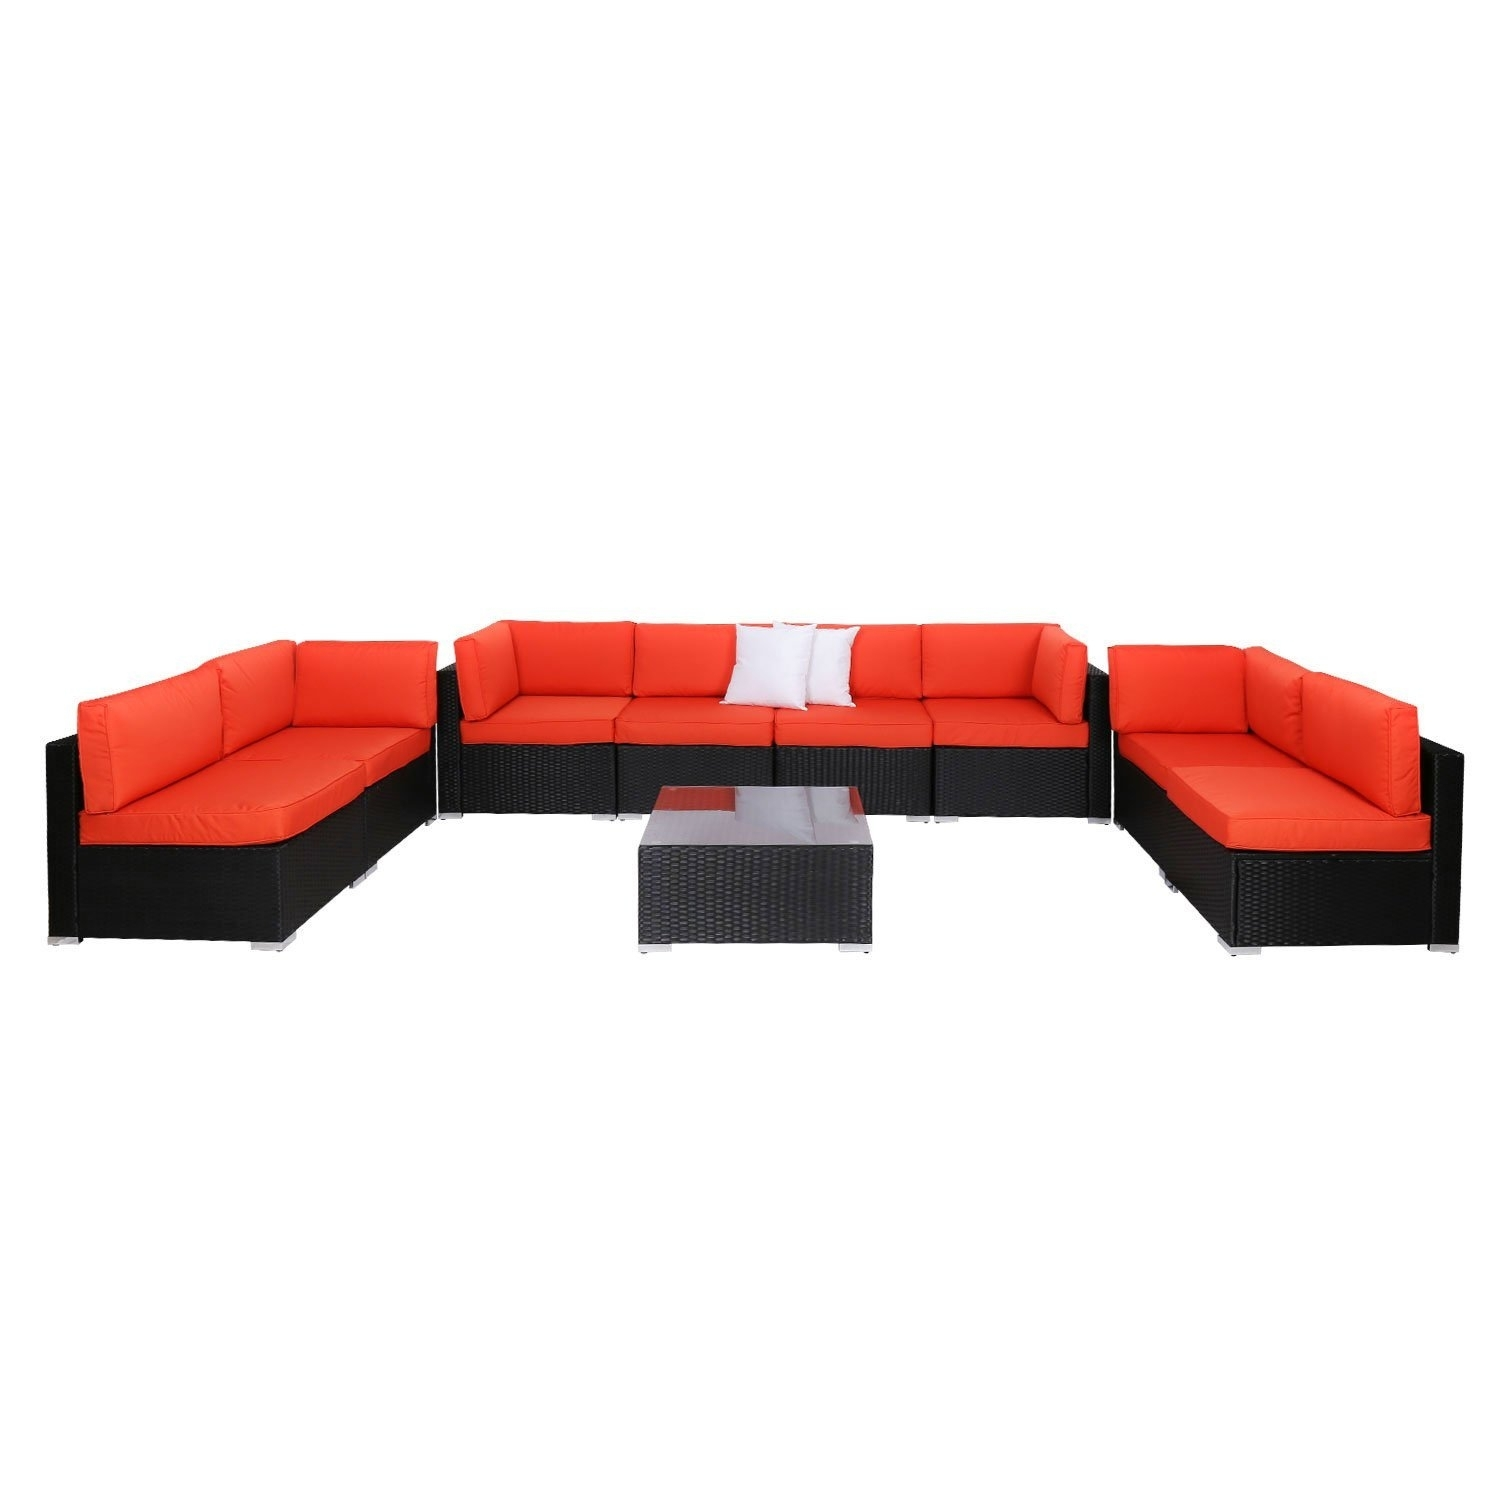 Cheap Ashley Furniture Sectional Sofas, Find Ashley Furniture With Regard To Delano 2 Piece Sectionals With Laf Oversized Chaise (Image 7 of 25)